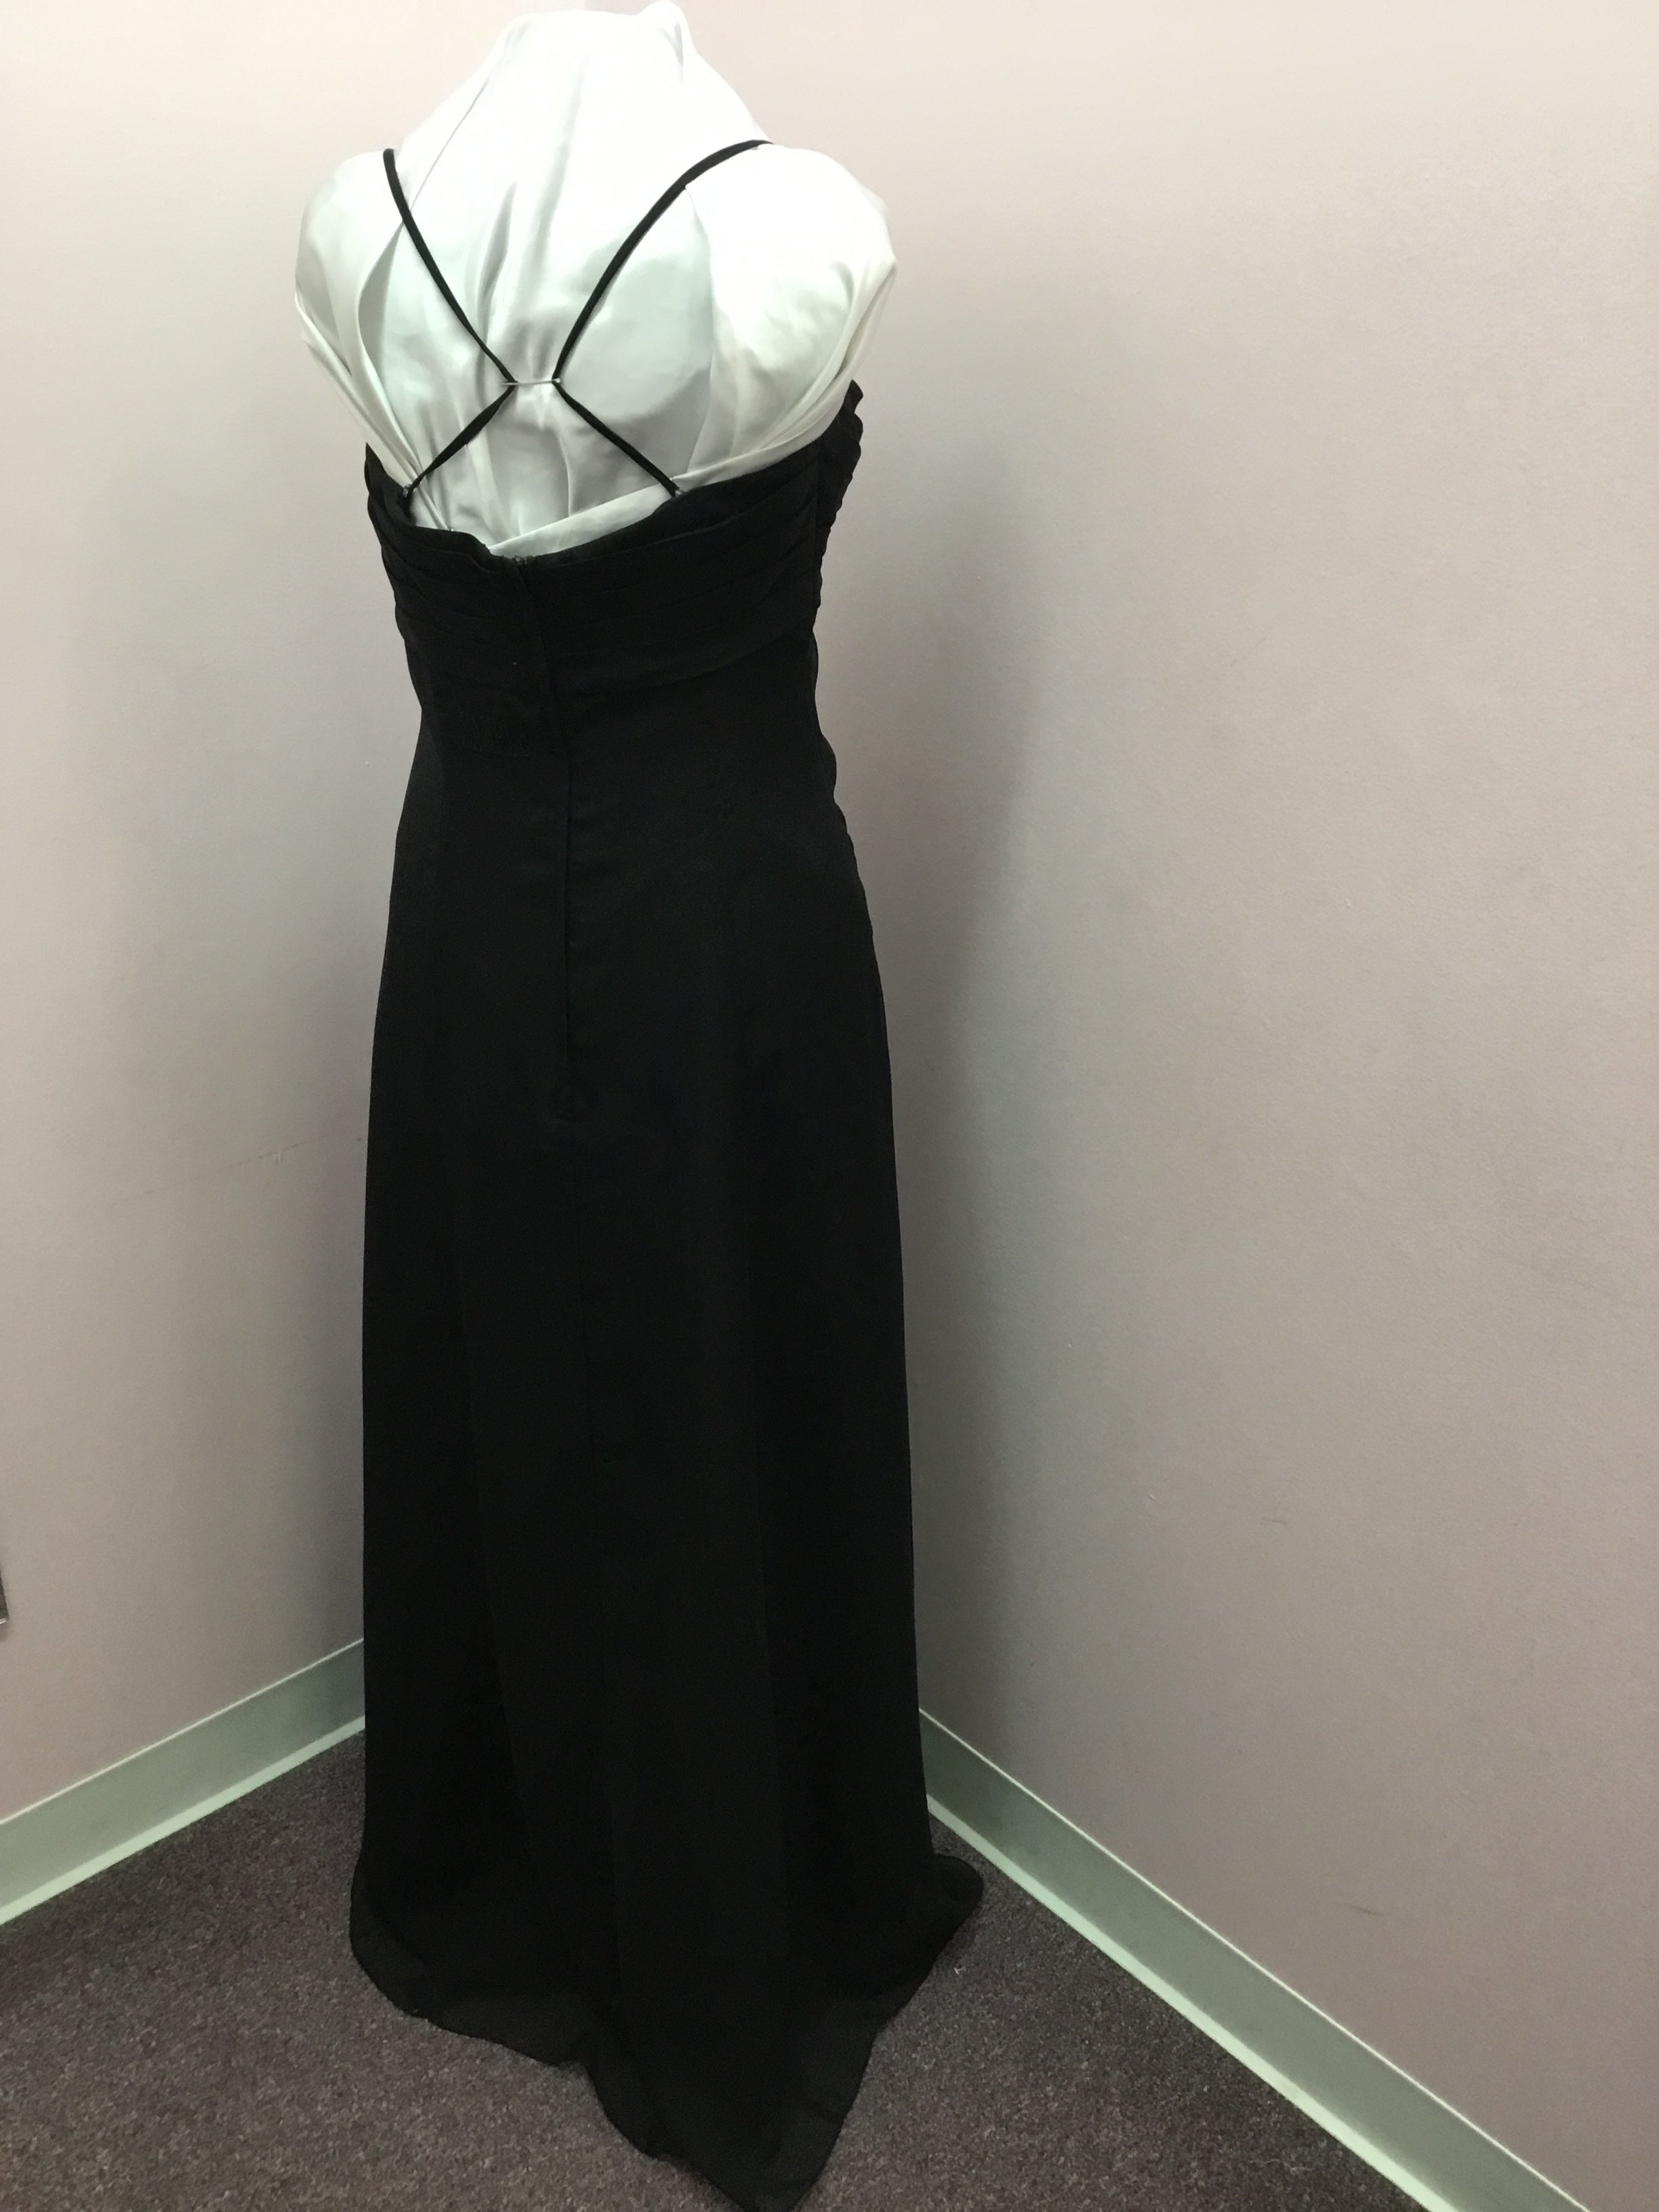 Spaghetti Strap Black Dress